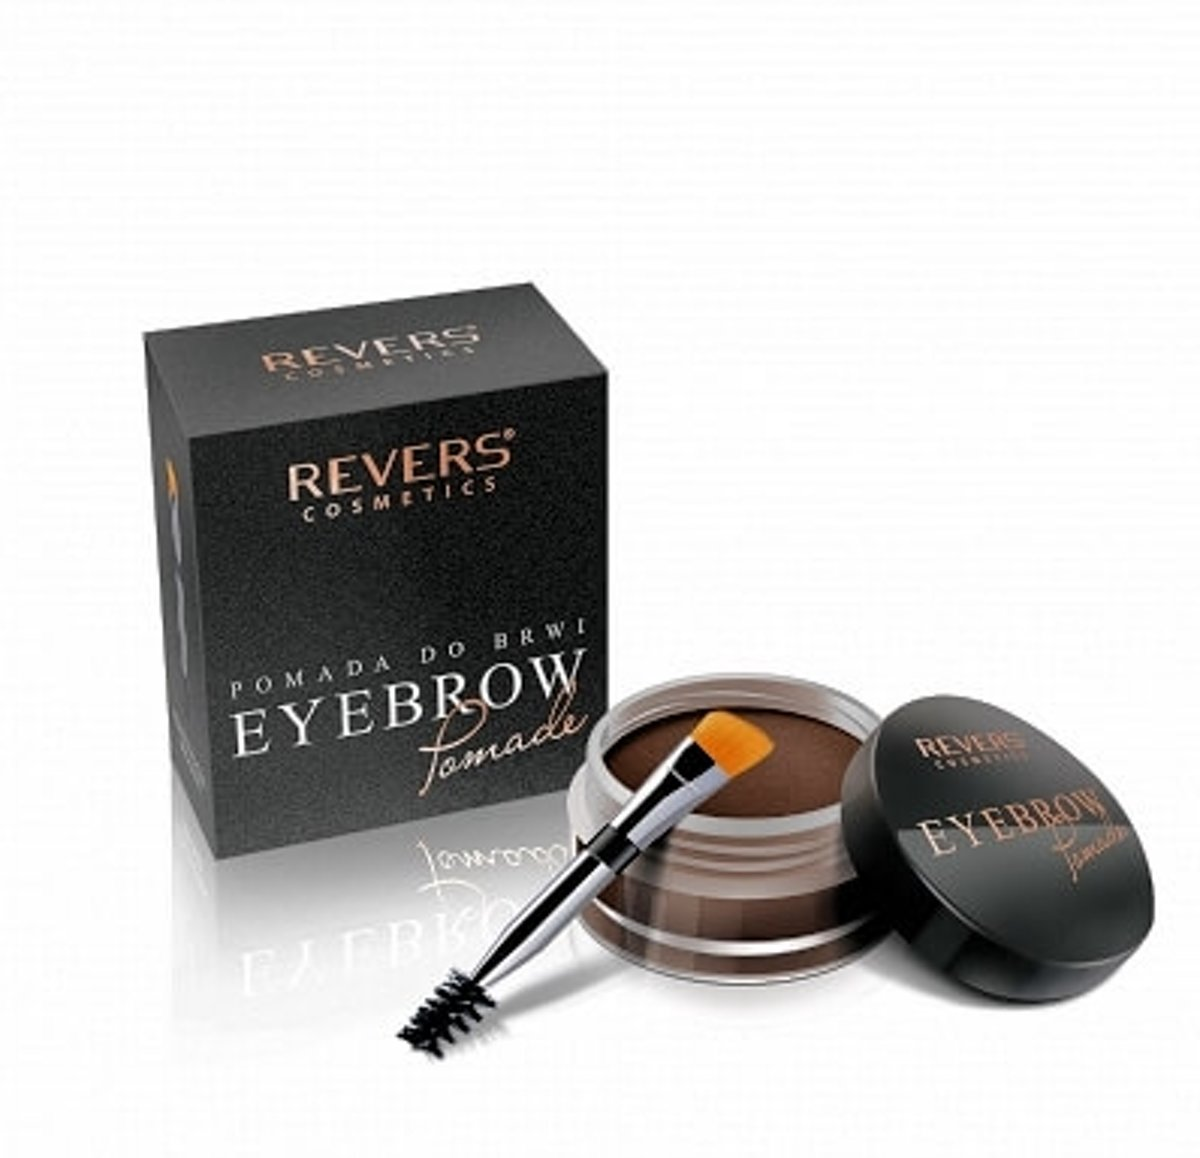 REVERS® Eyebrow Pomade Met Argan Olie #03 - Brown